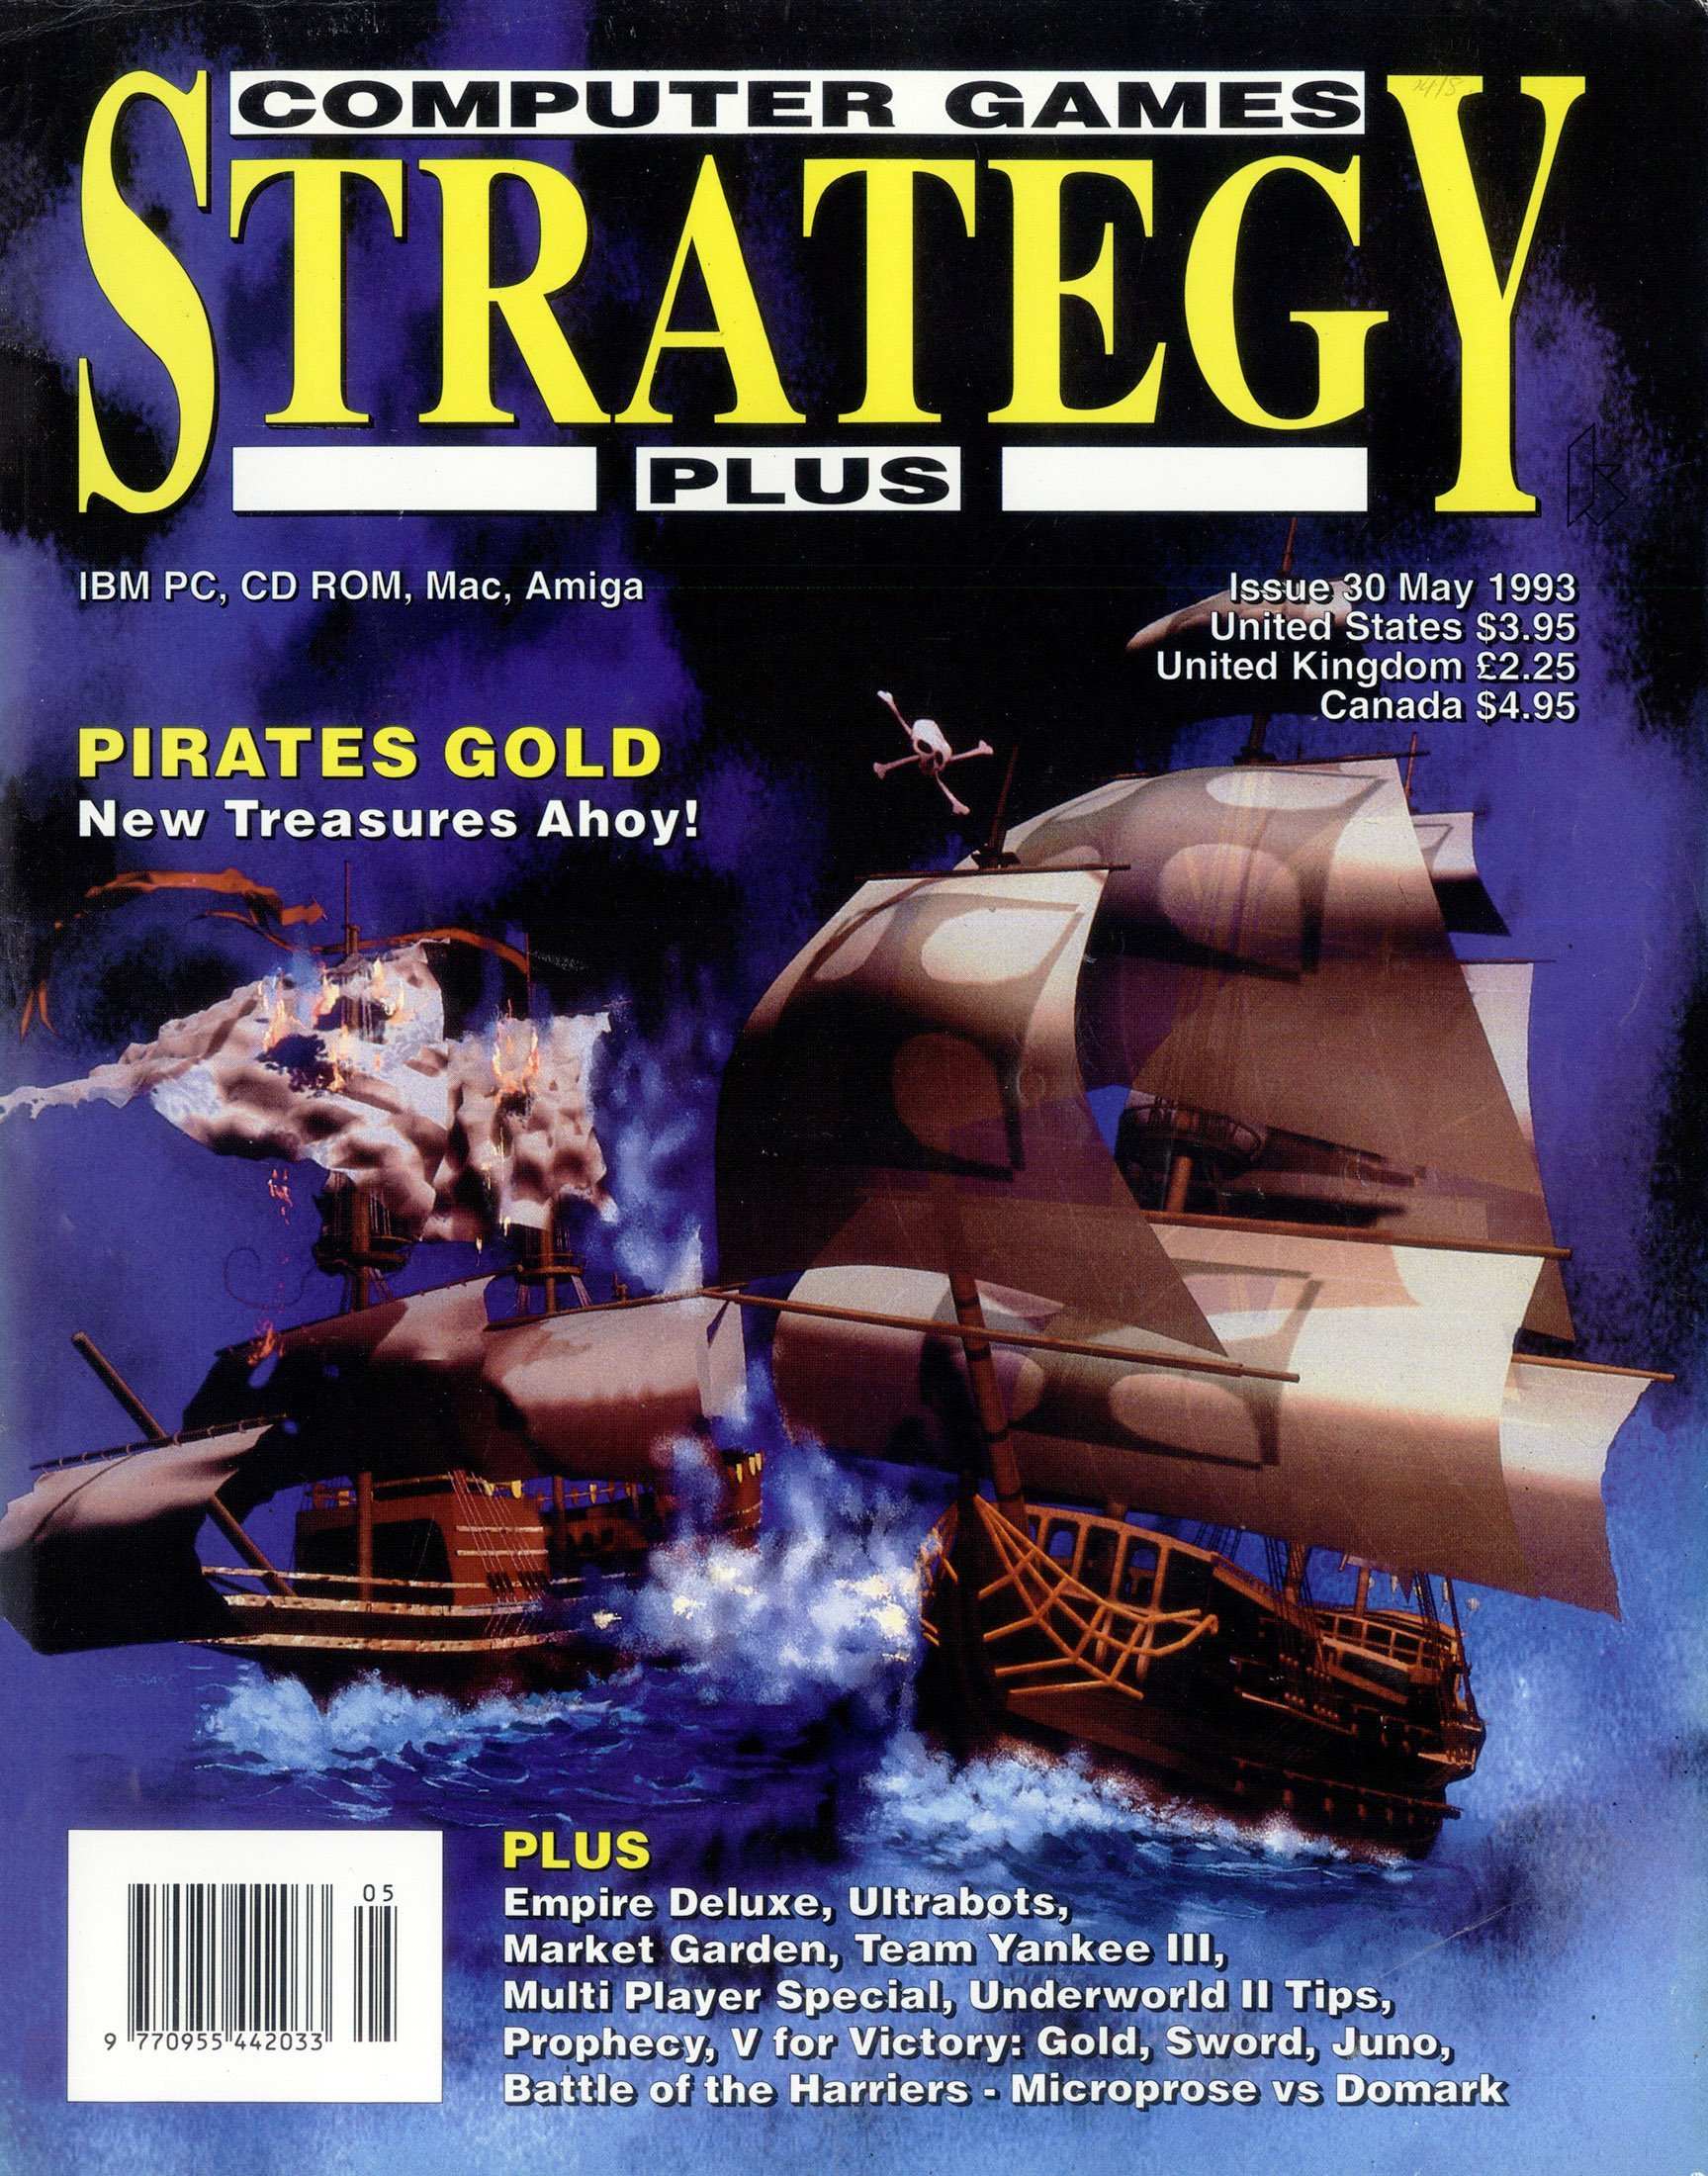 Computer Games Strategy Plus Issue 030 (May 1993)